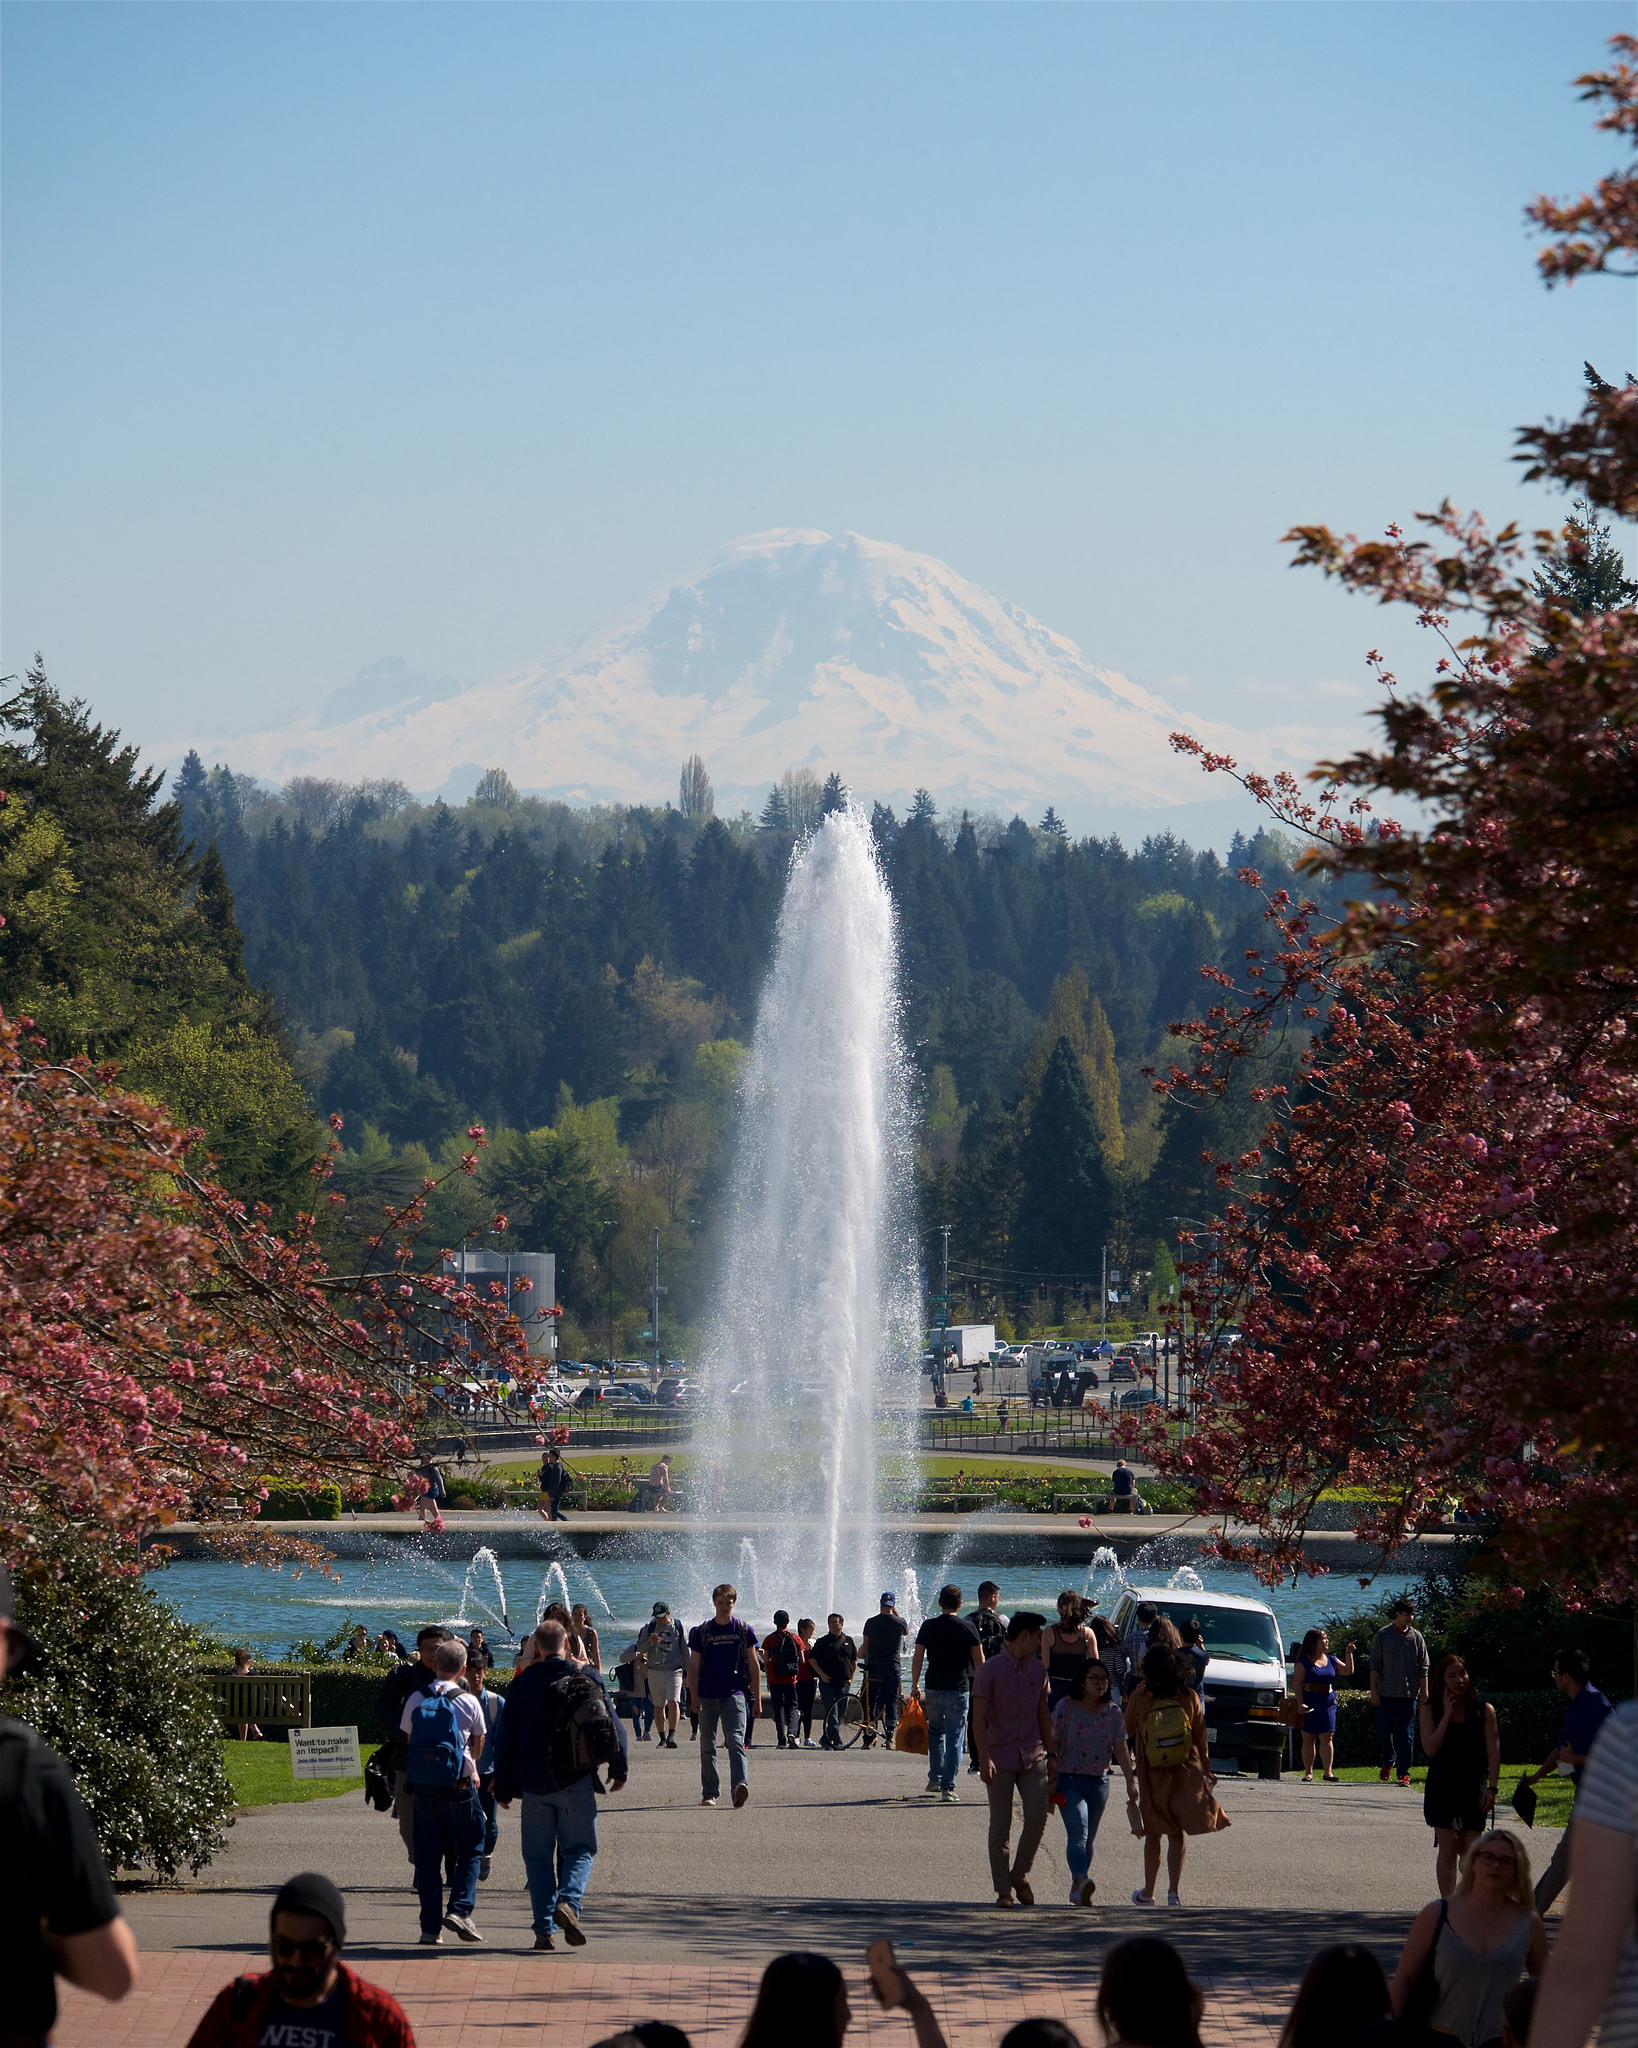 Drumheller Fountain and Mt. Rainier on the University of Washington Campus